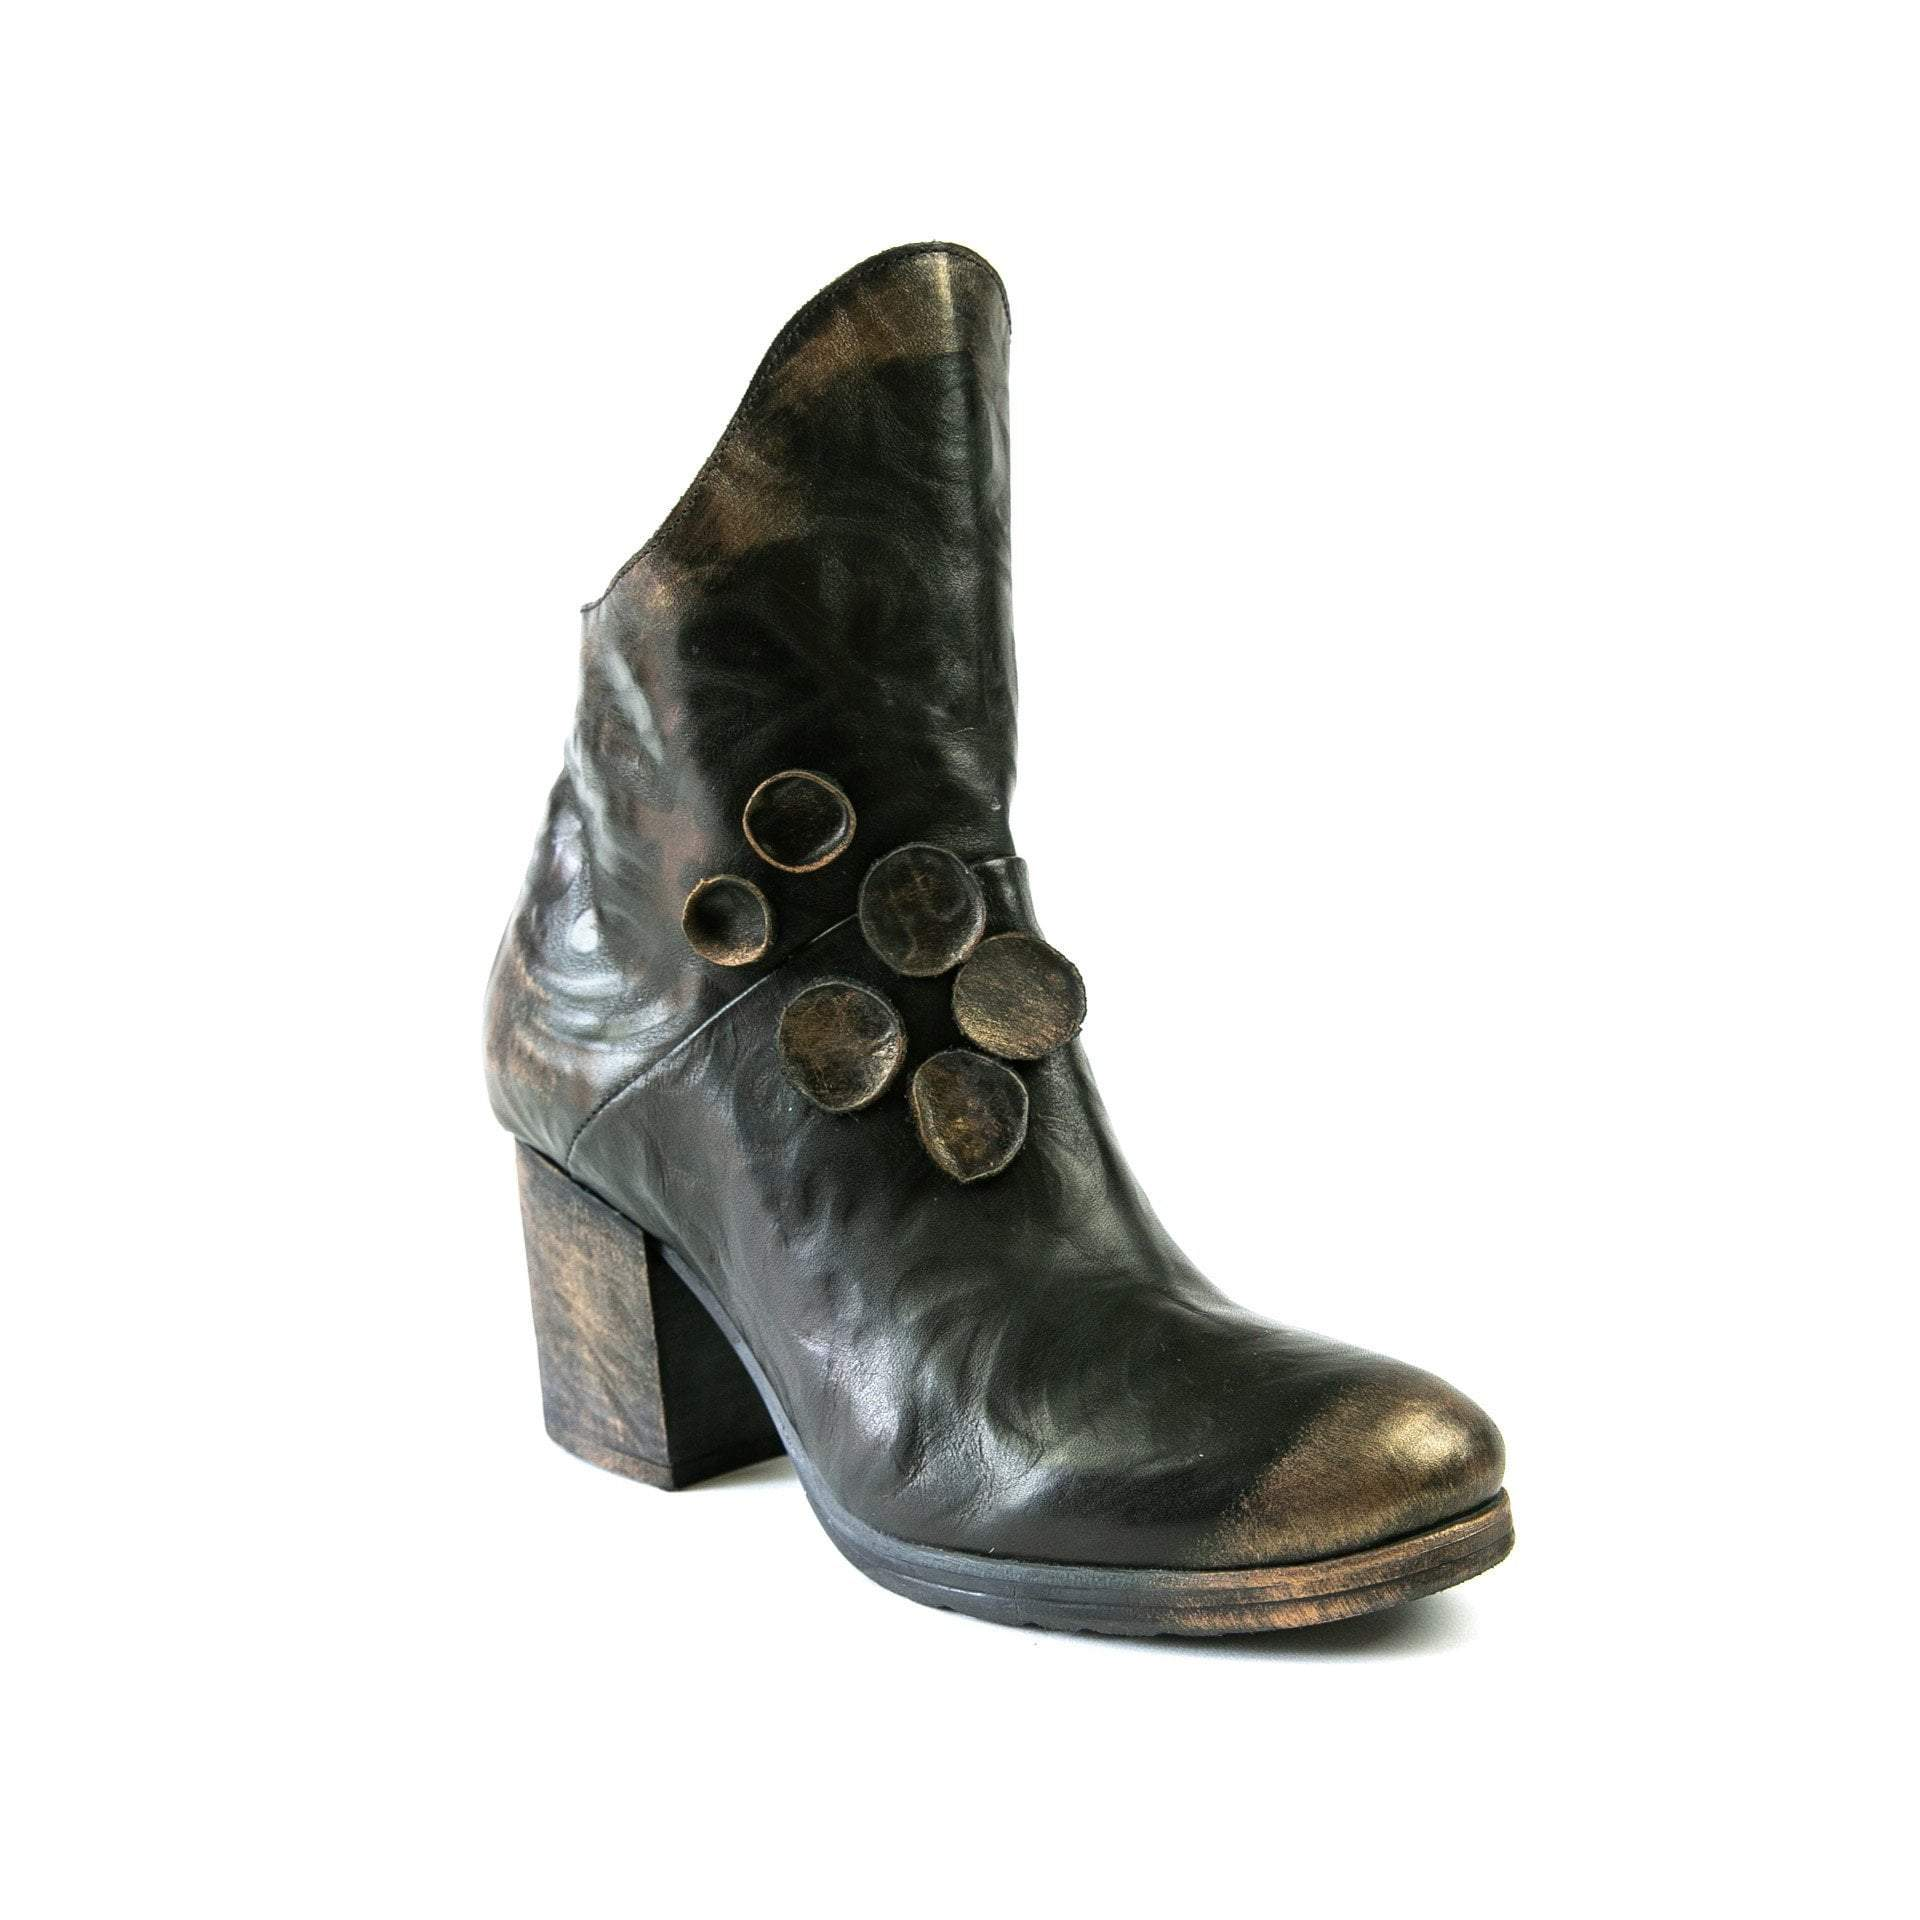 Papucei Boots 7 / alexa / 3 inches Alexa PPB17692